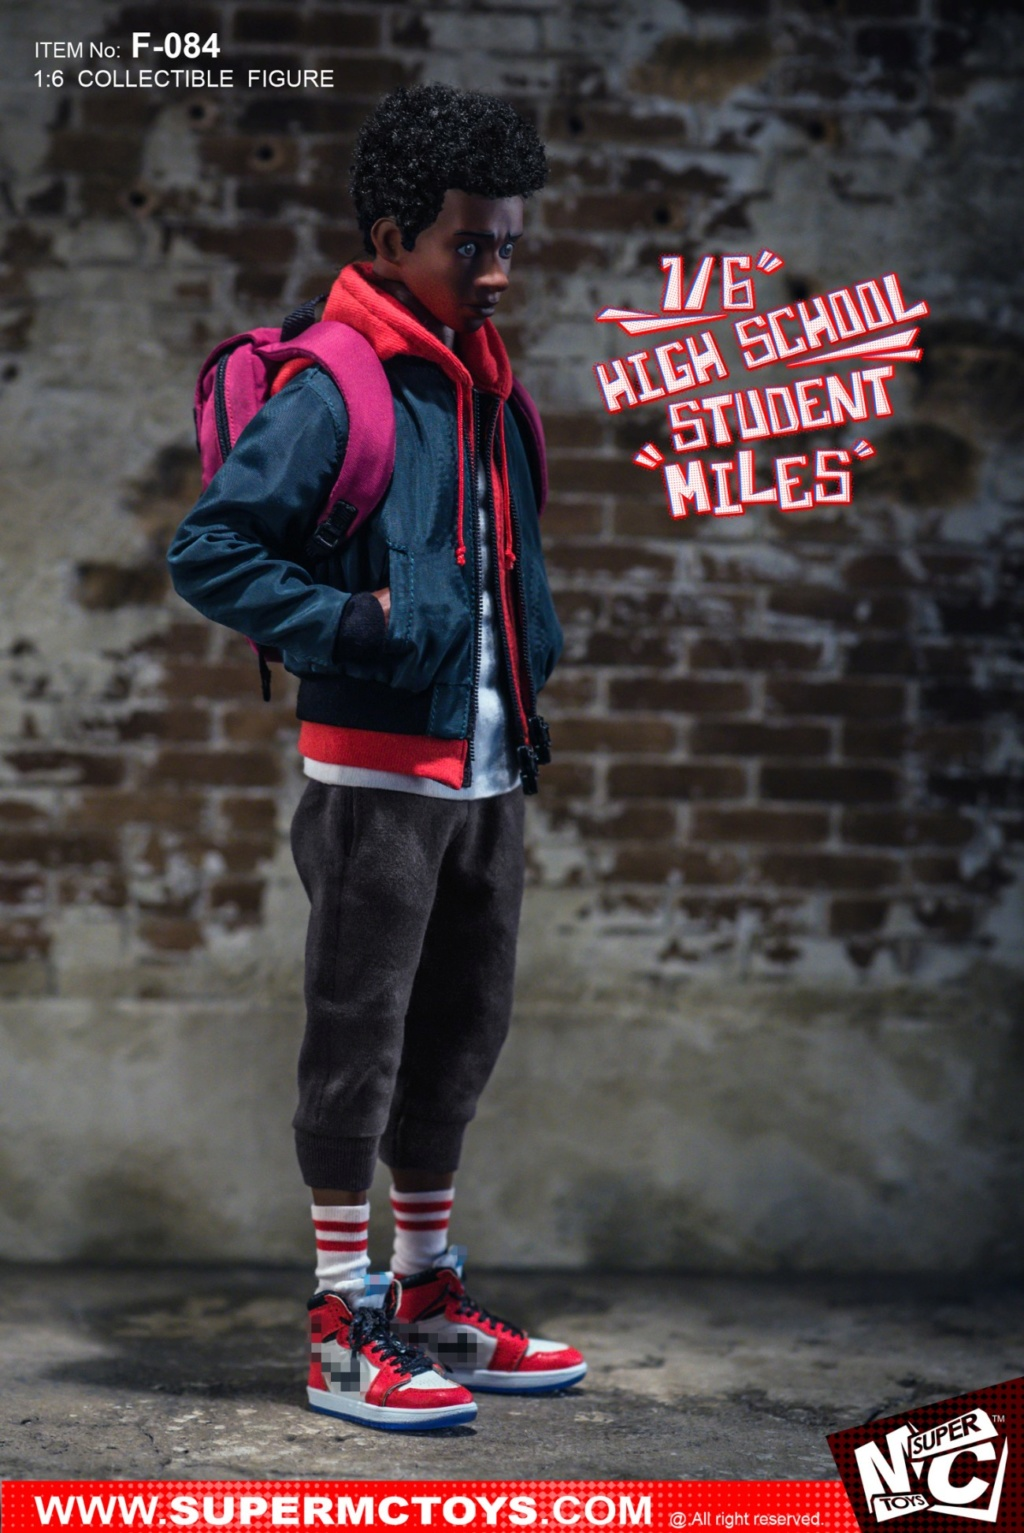 male - NEW PRODUCT: SUPERMCTOYS: 1/6 High School Students - Little Black Miles Miles Movable F-084# 19372710